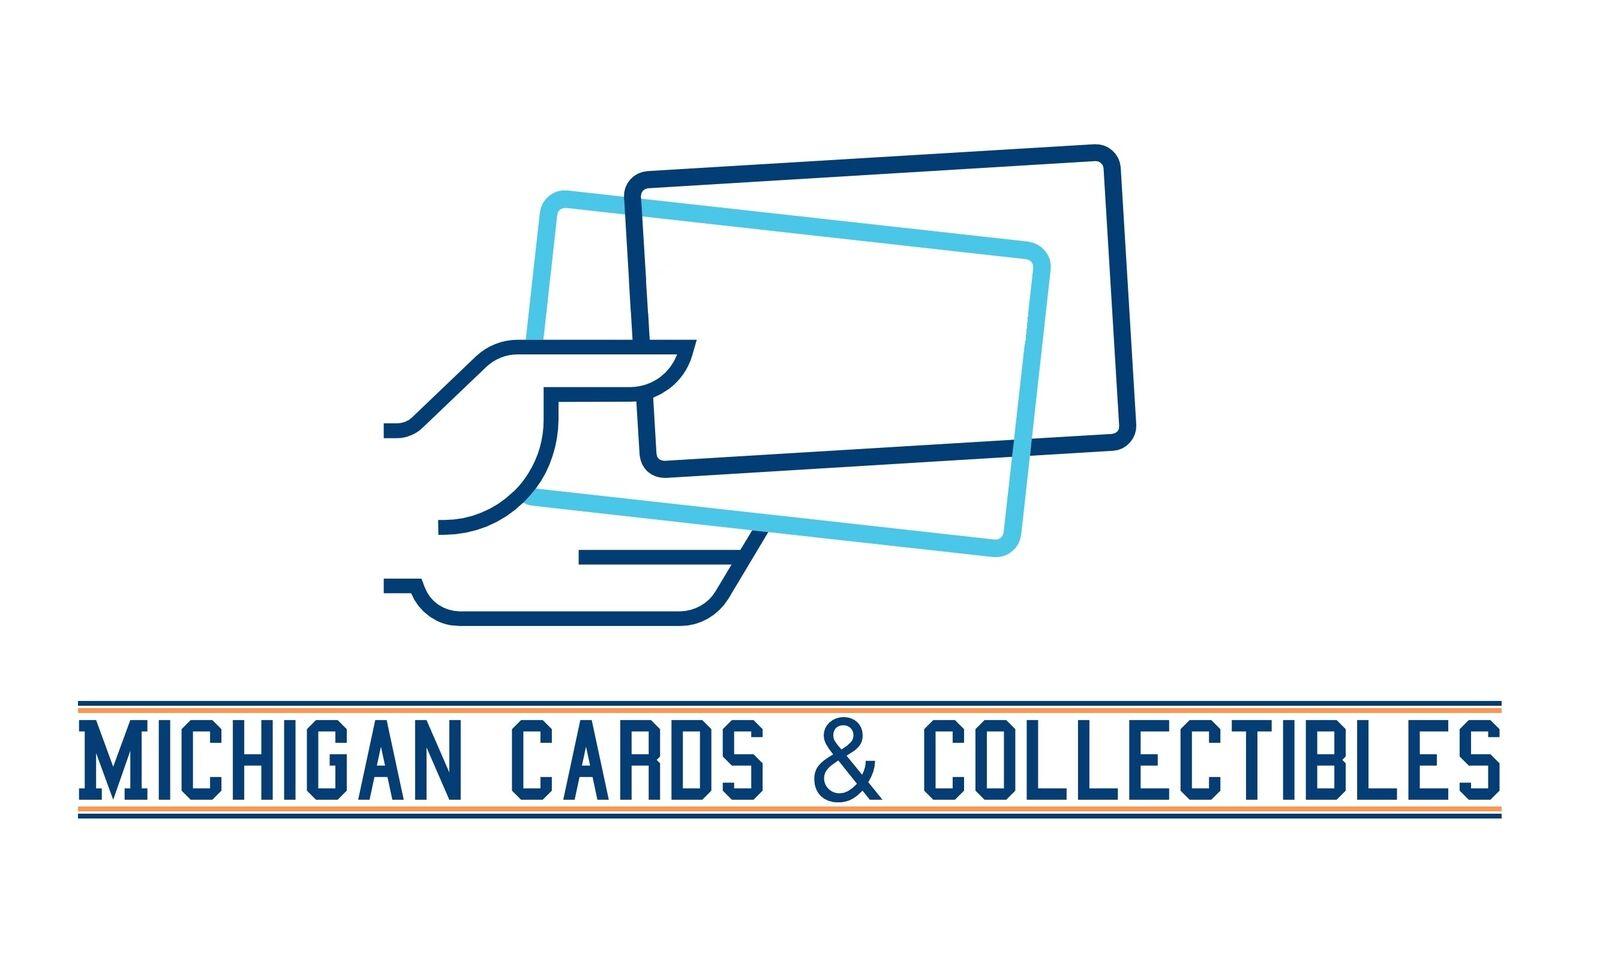 Michigan Cards and Collectibles